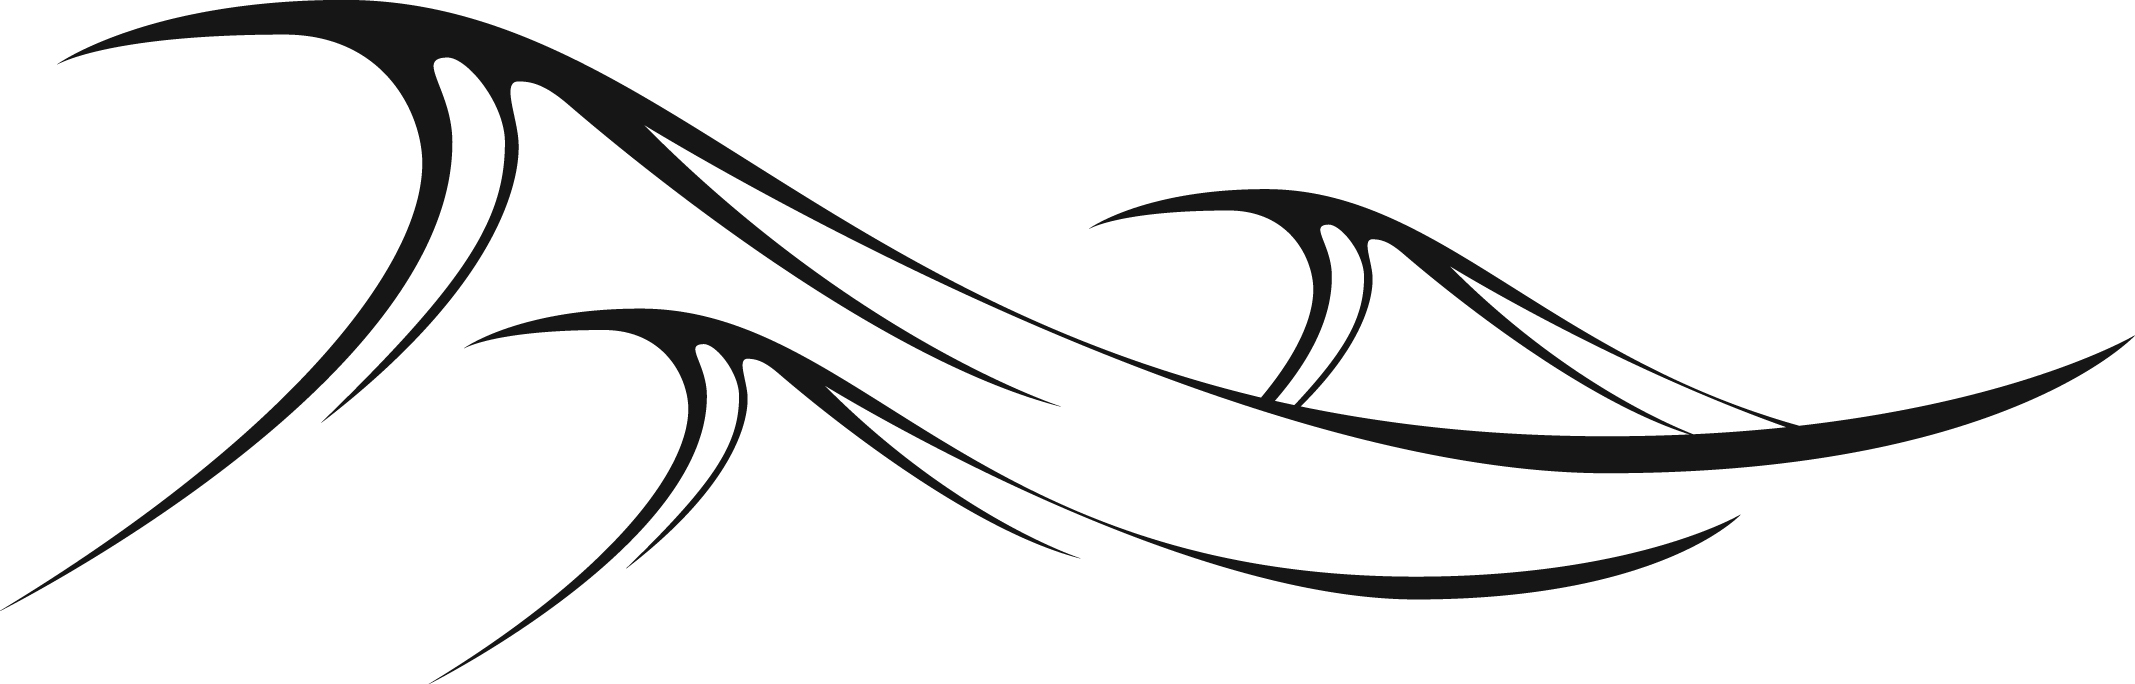 Waves clipart black and white. Free wave cliparts download